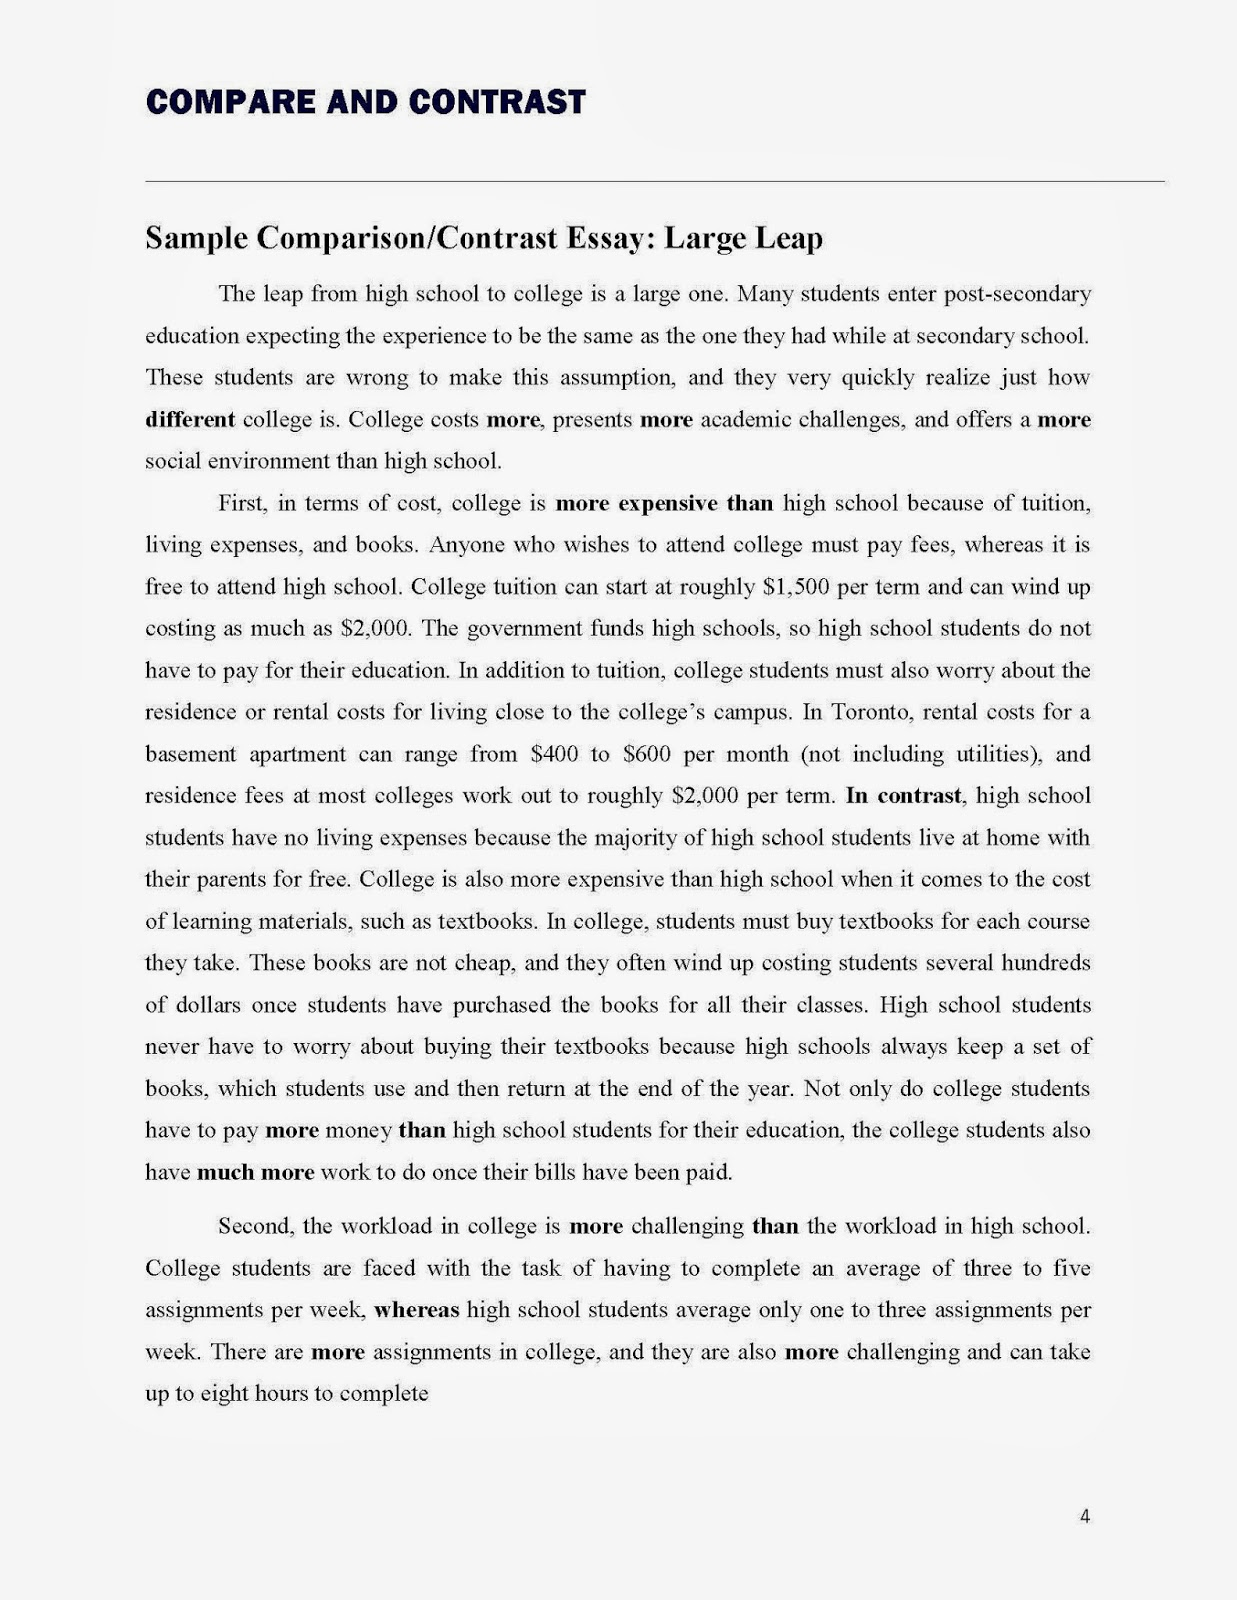 Modest Proposal Essay Ideas Persuasive Essay Topics For High  Easy Essay Topics For High School Students Compare Contrast Essay Prompts  Compare Contrast Essay Writing Compare And Contrast Essay Prompt Liao  Ipnodns